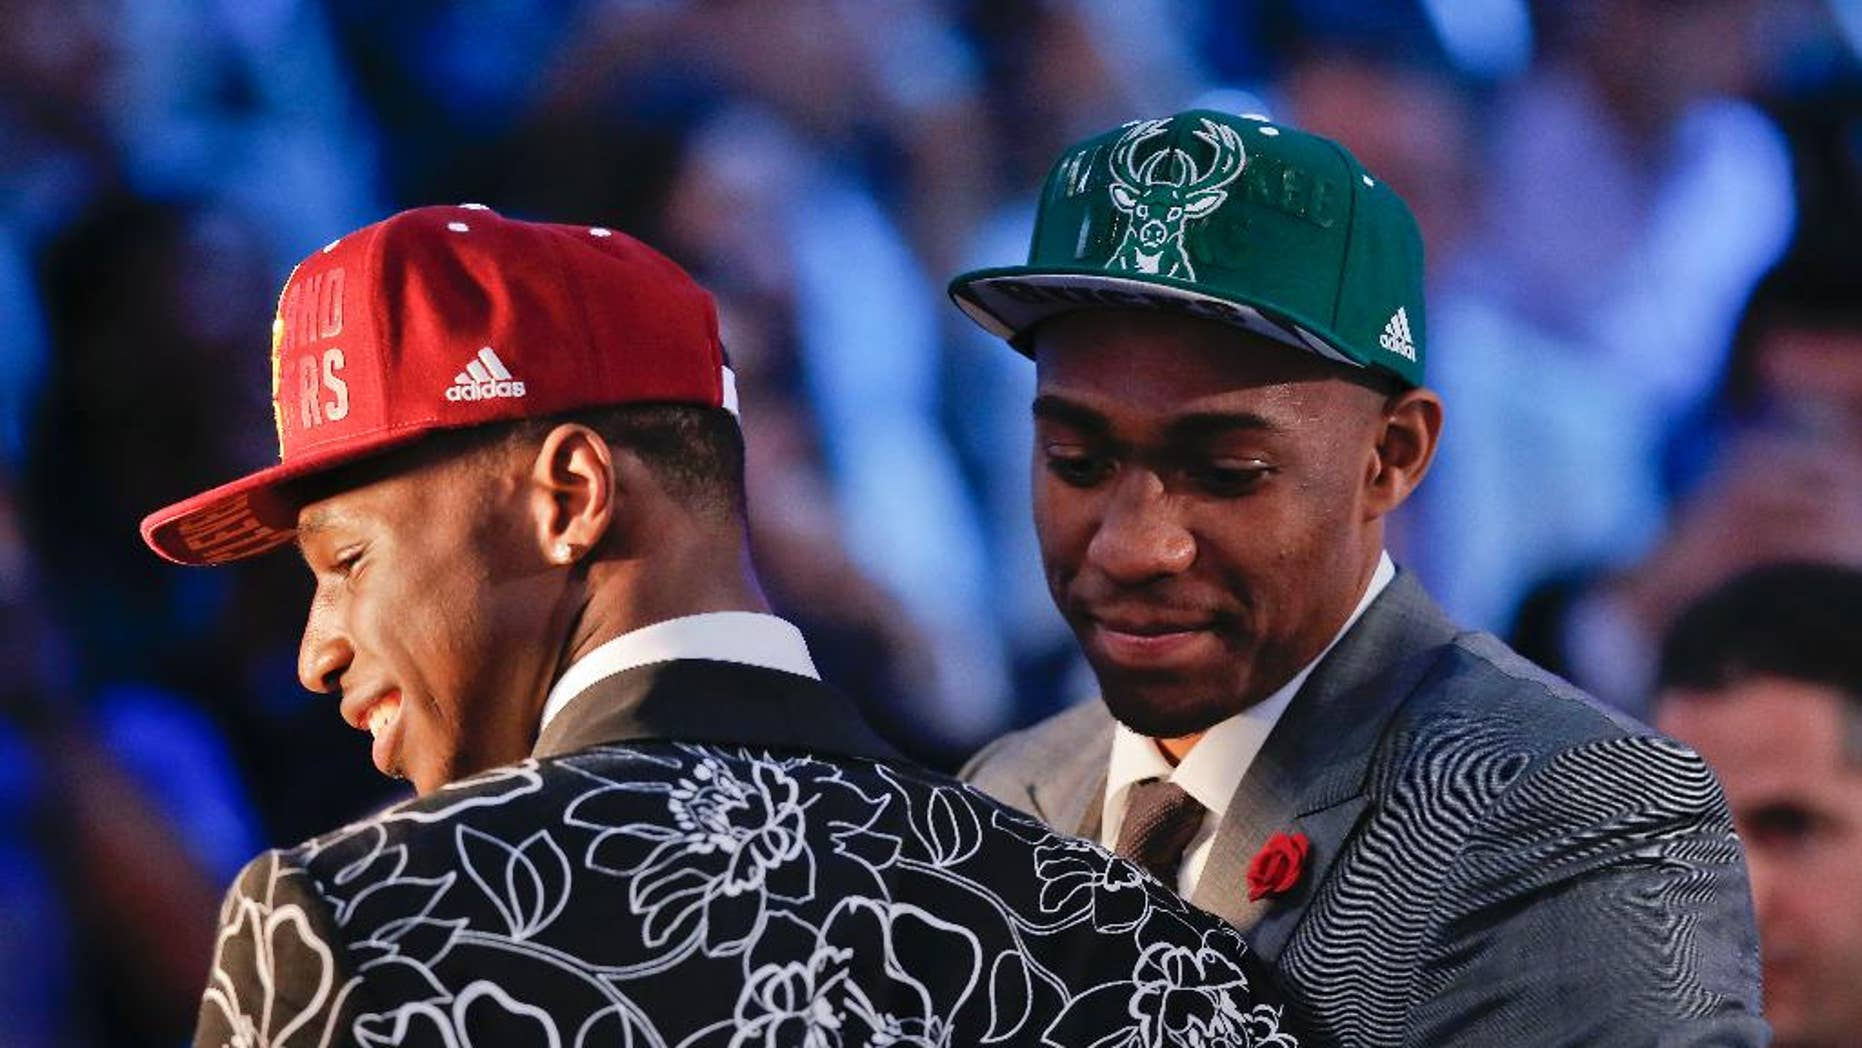 Andrew Wiggins, left, and Jabari Parker stop for television interviews after being selected as the top two picks in the 2014 NBA draft, Thursday, June 26, 2014, in New York. Wiggins was selected number one by the Cleveland Cavaliers and Parker was chosen number two by the Milwaukee Bucks. (AP Photo/Kathy Willens)